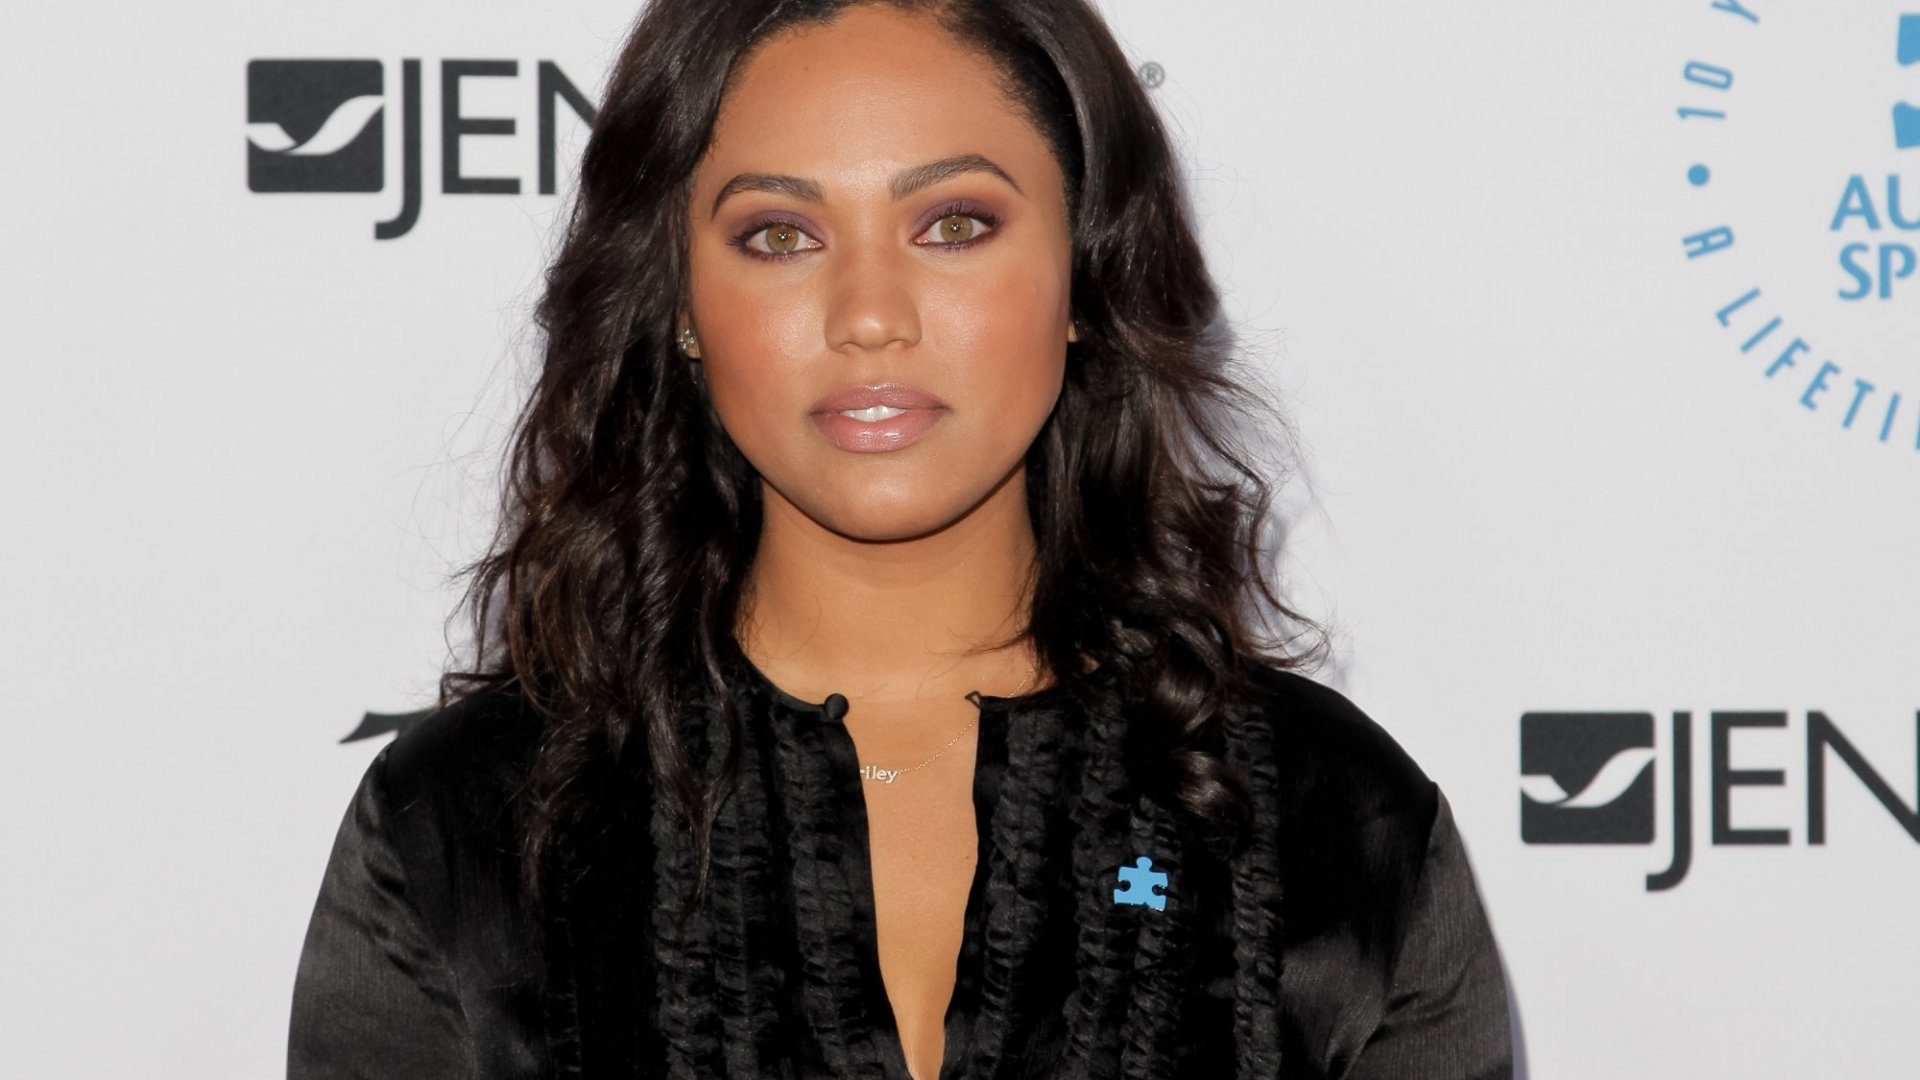 Ayesha Curry Launches a Food Startup, So You Can Eat Like a Golden State Warrior